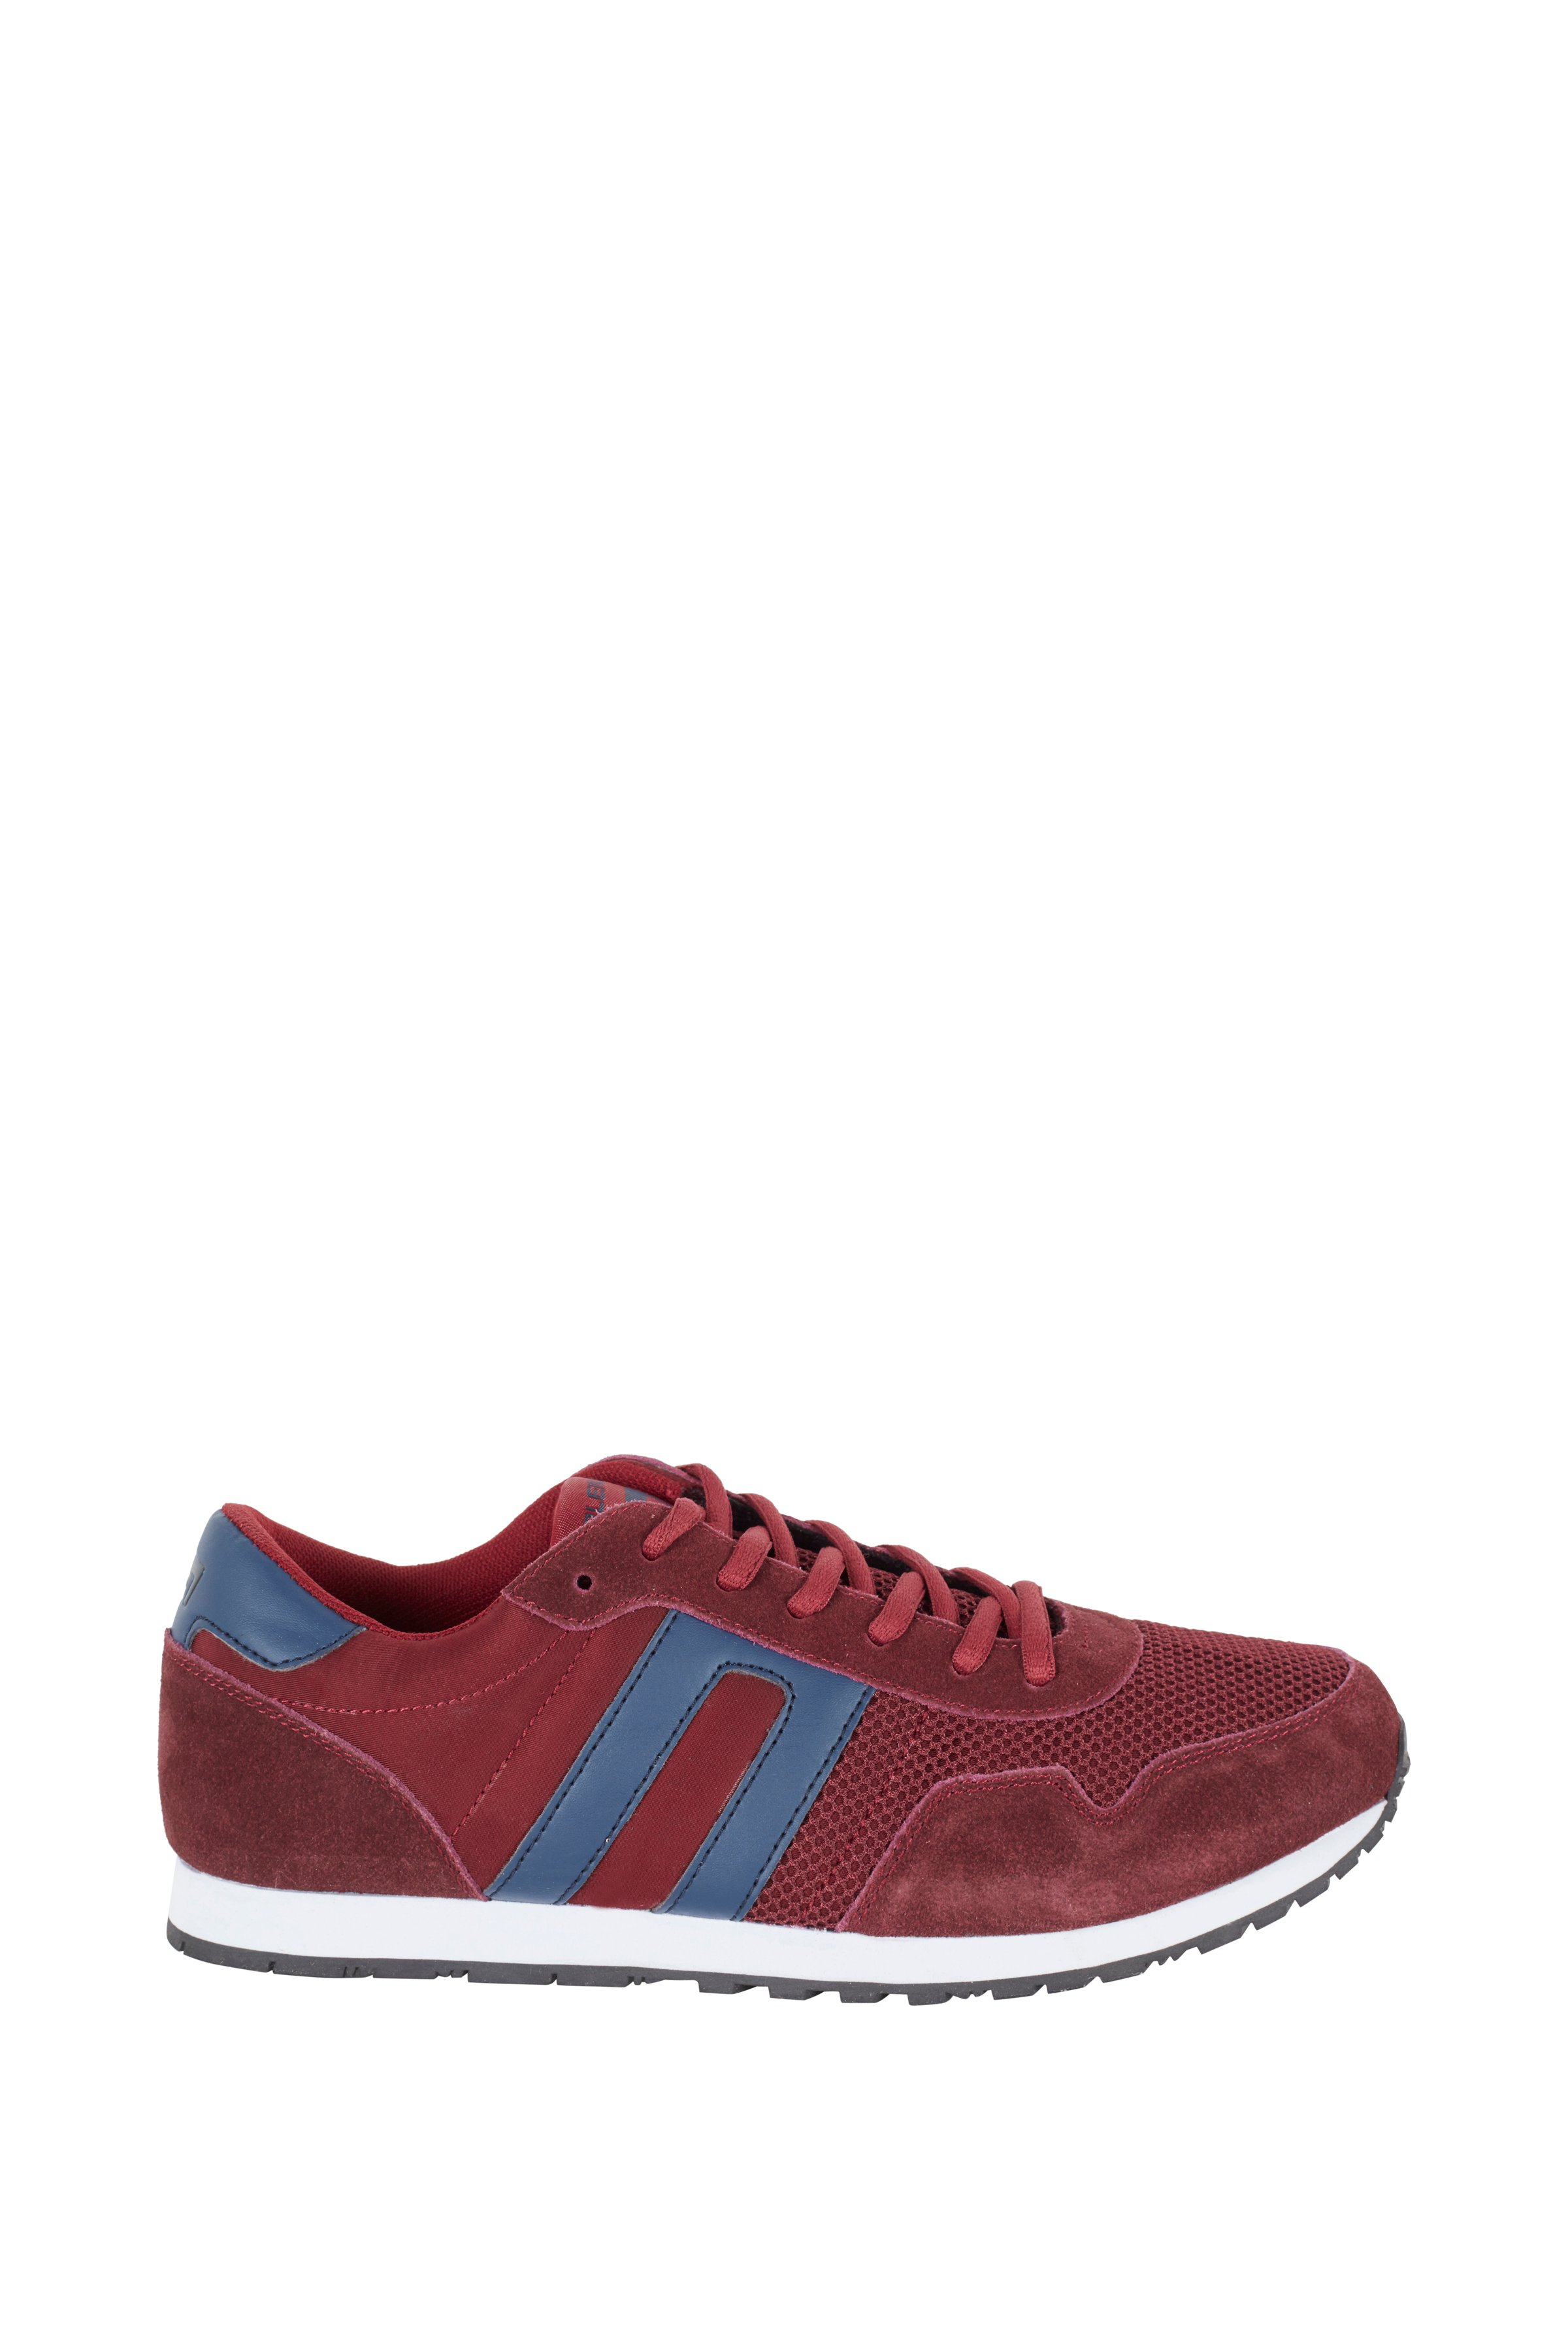 Wine red Sneakers – Køb Wine red Sneakers fra str. 40-46 her